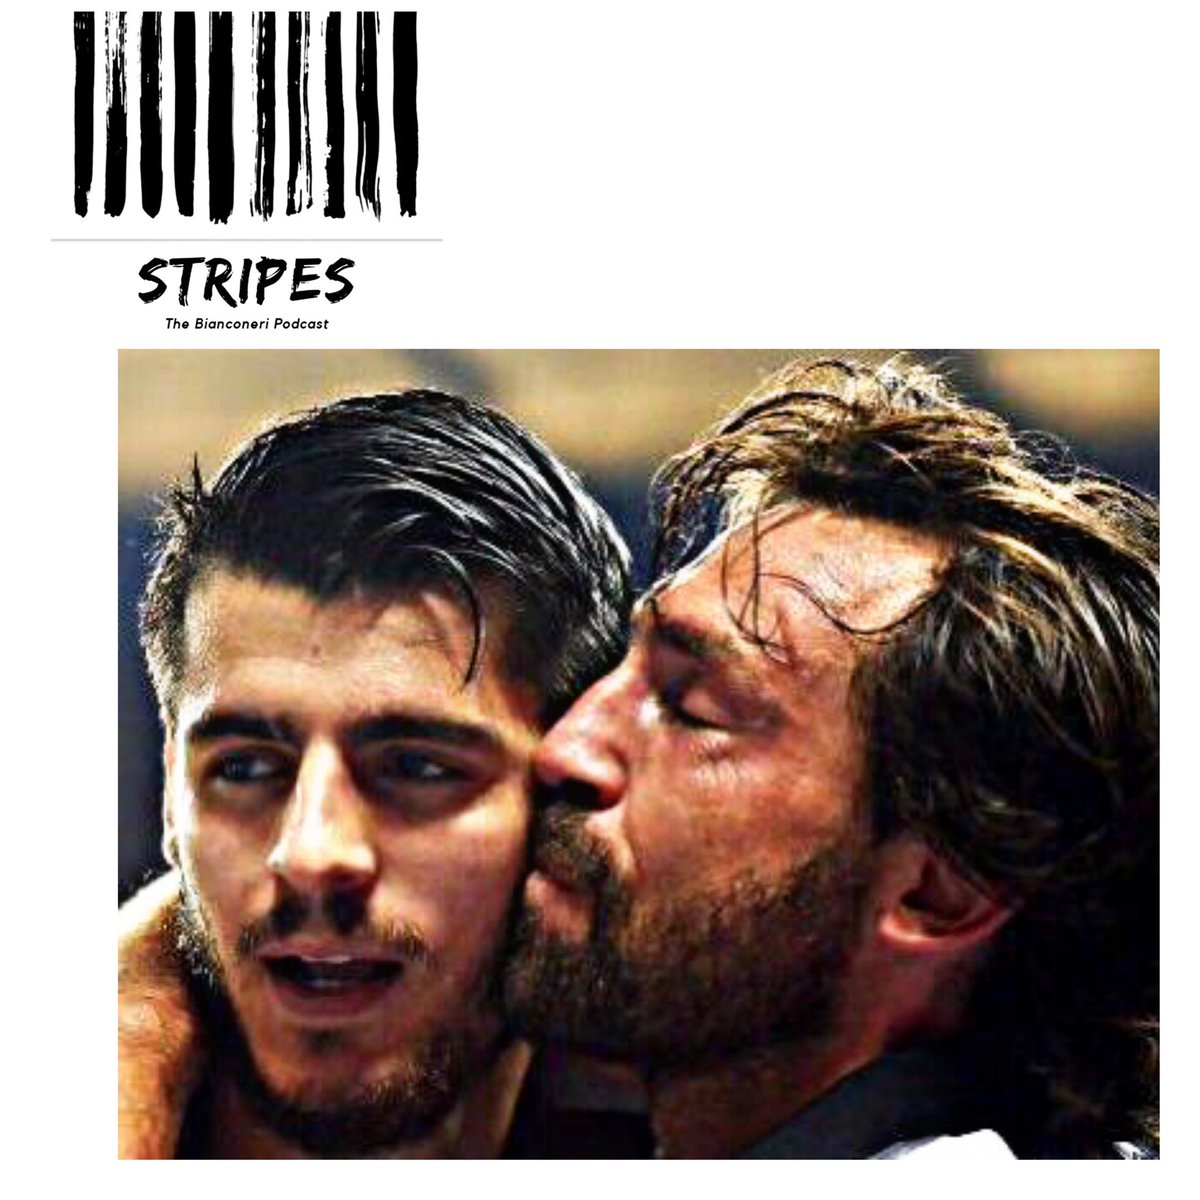 Welcome back home!! All the details in the next episode of Stripes!!!  #juve #juventus #finoallafine #finoallafineforzajuventus #forzajuve #forzajuventus #seriea #soccer #calcio #adp10 #CR7 #pirlo #jbworld  #morata https://t.co/4Q6dqnAWPT